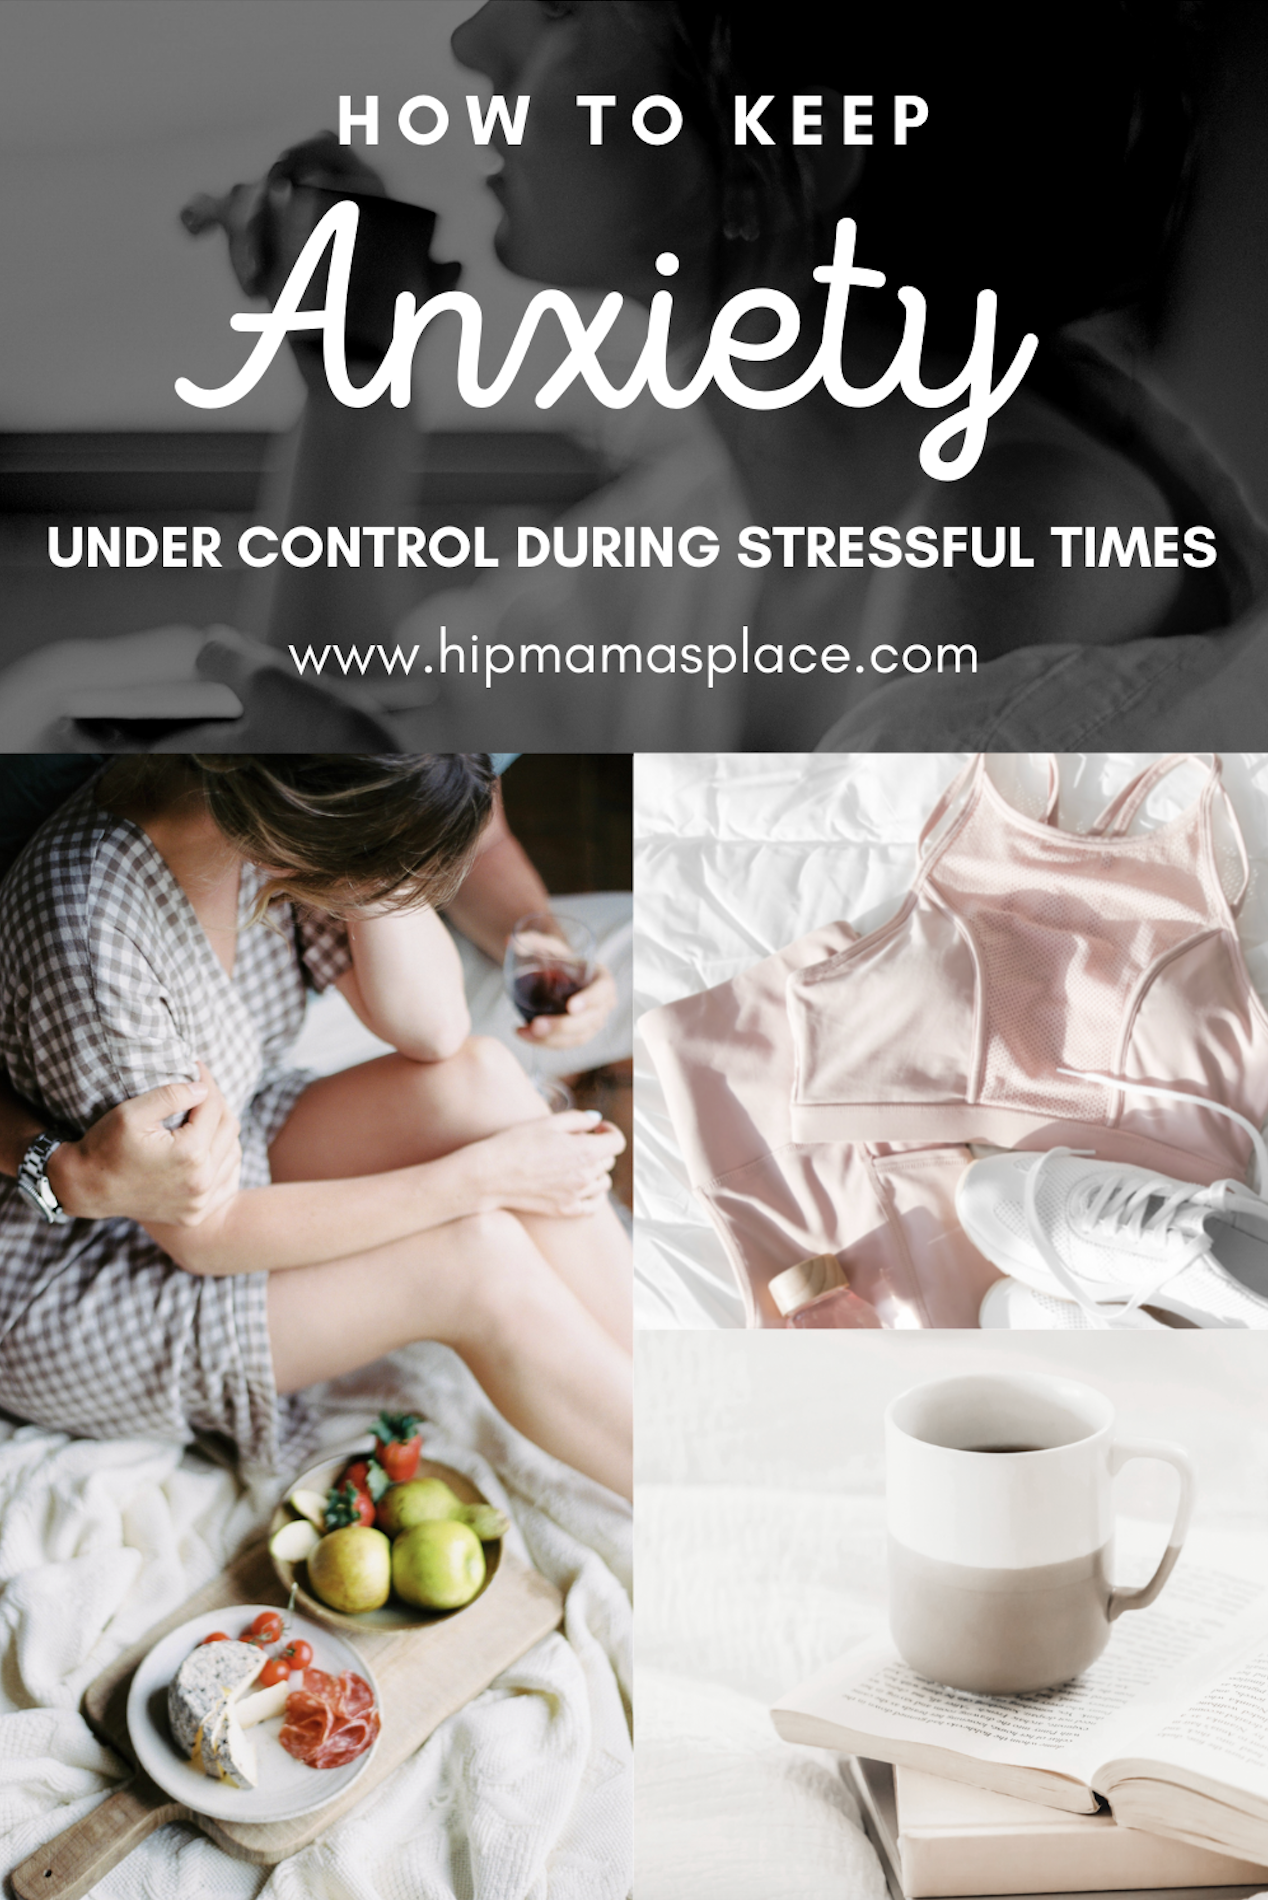 How to Keep Anxiety Under Control During Stressful Times